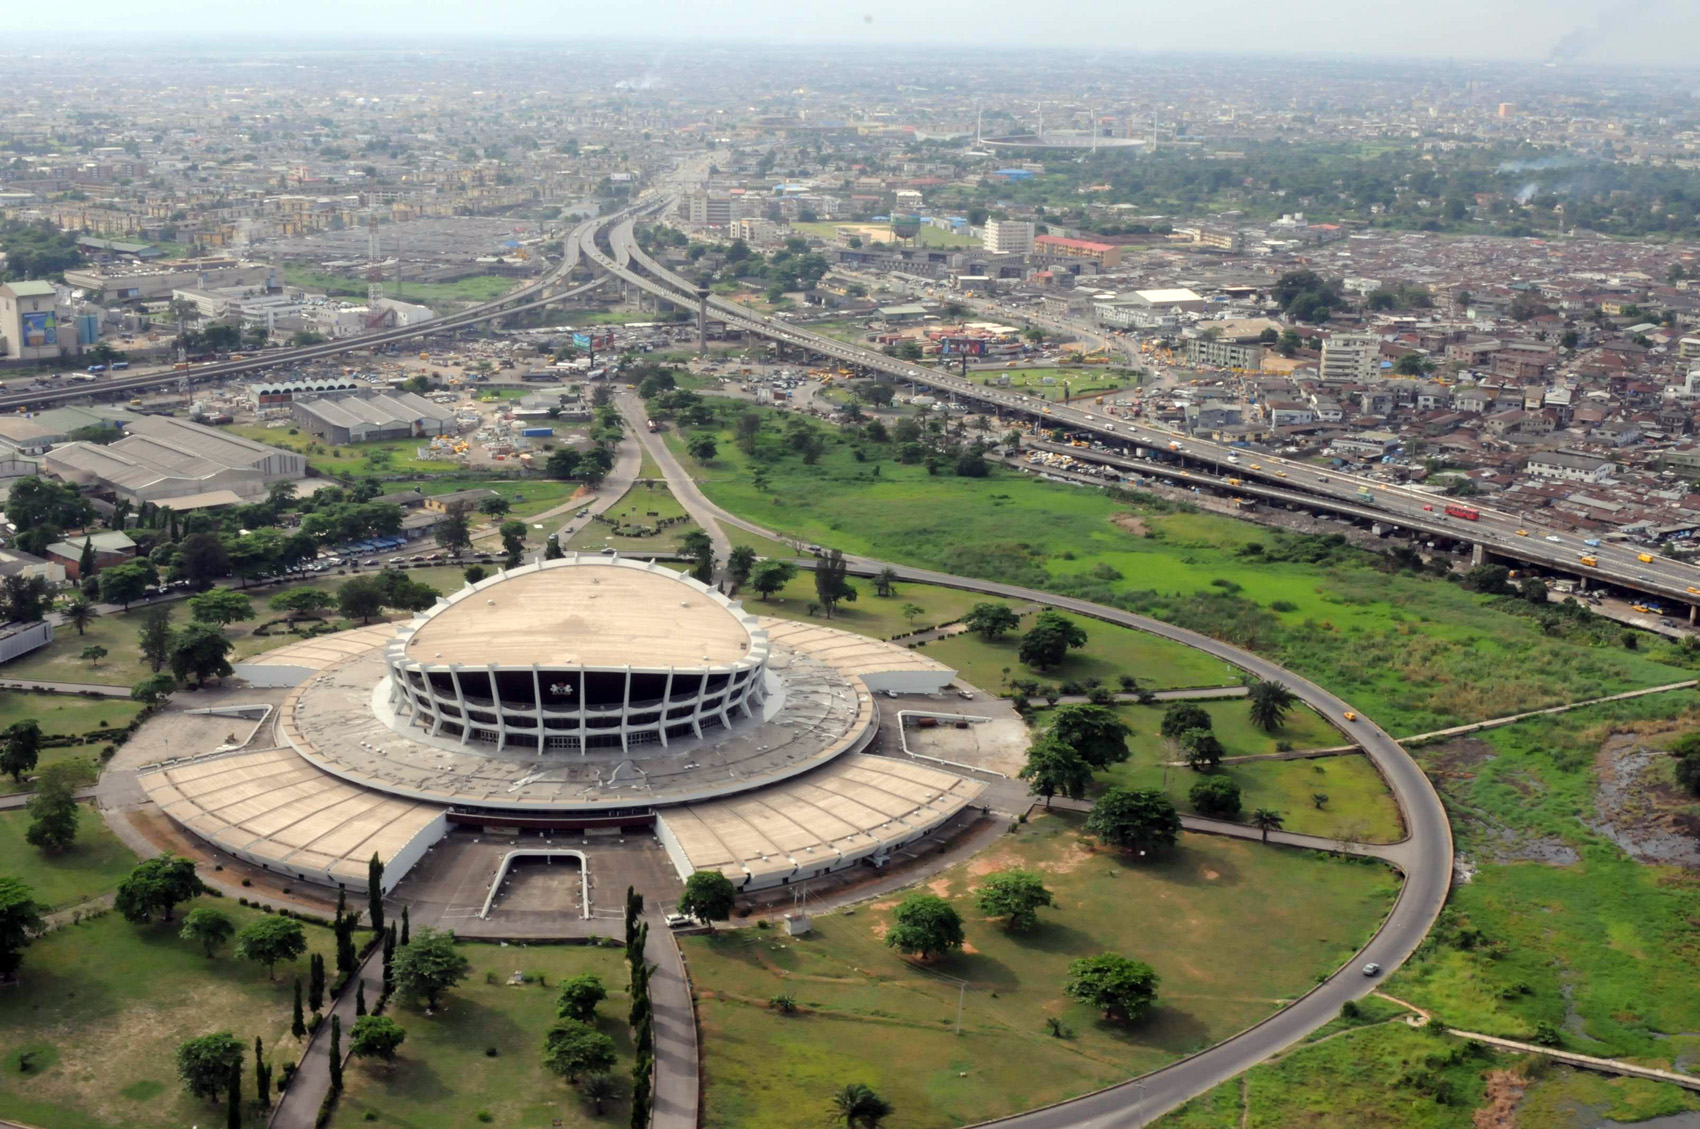 sights-about-lagos-1